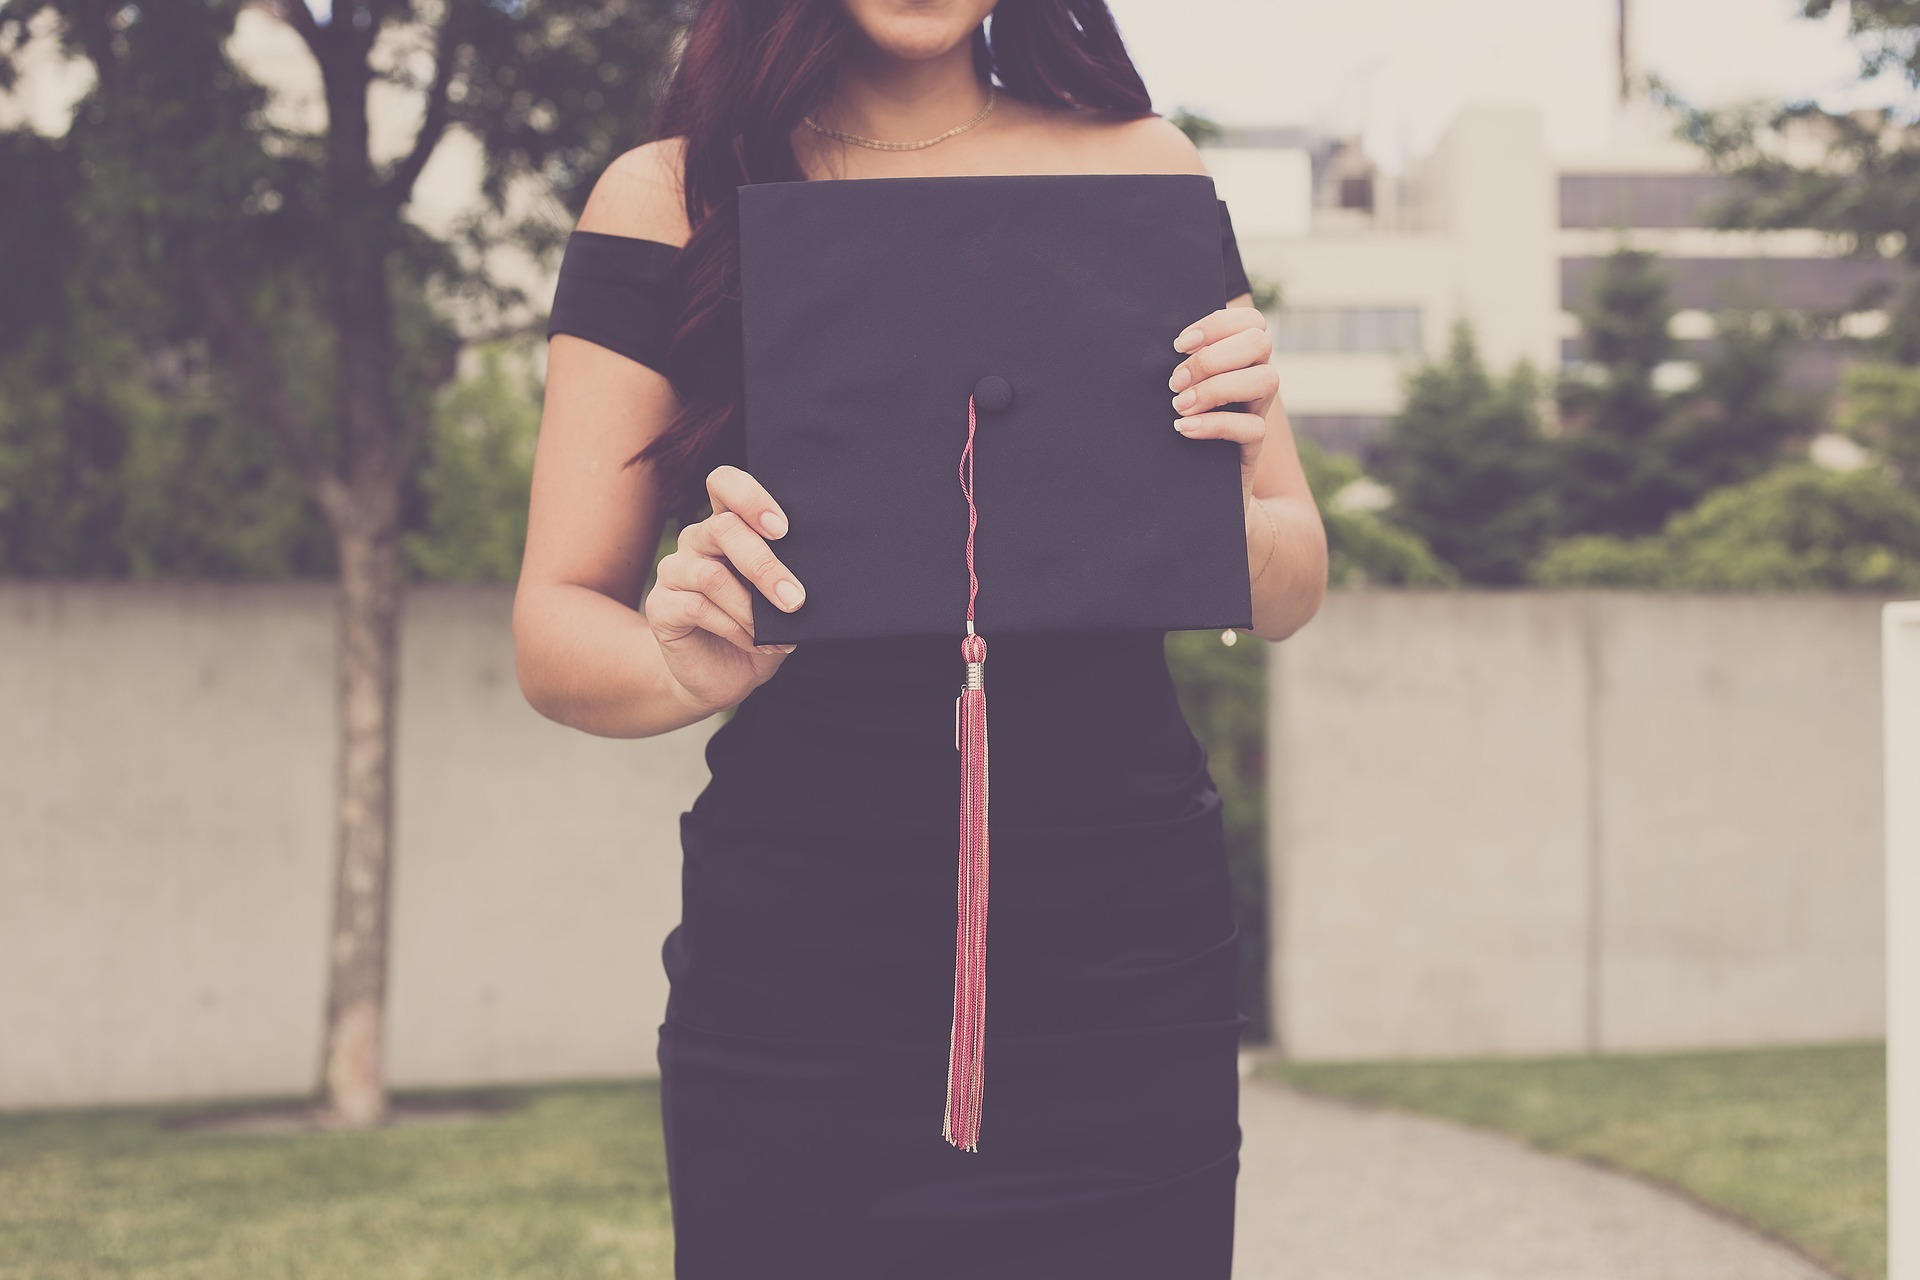 Are You Academically Prepared For An MBA? 4 Steps You Need To Take To Successfully Apply For An MBA